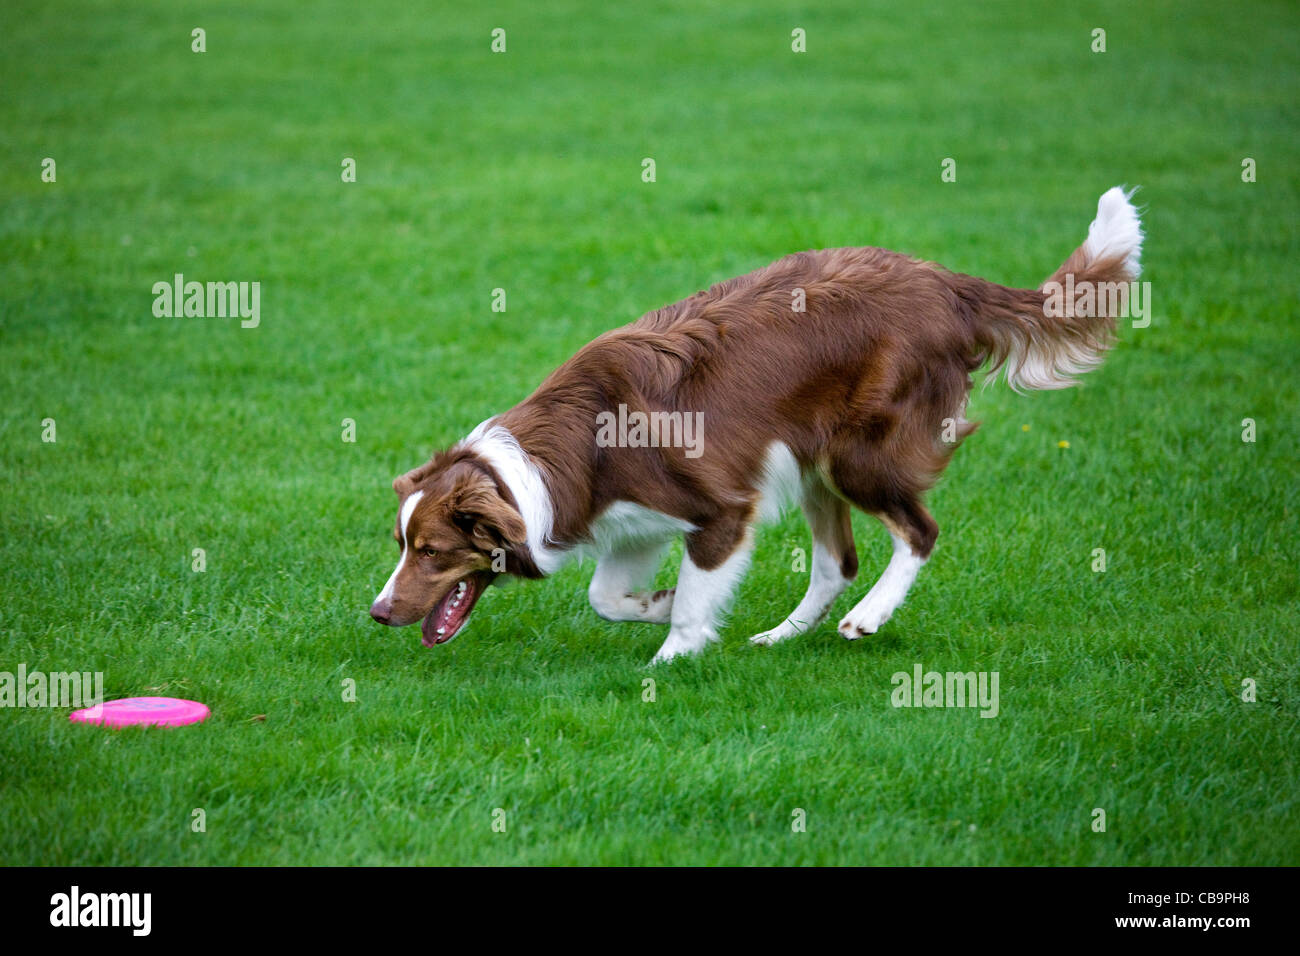 Border collie (Canis lupus familiaris) fetching frisbee in garden - Stock Image